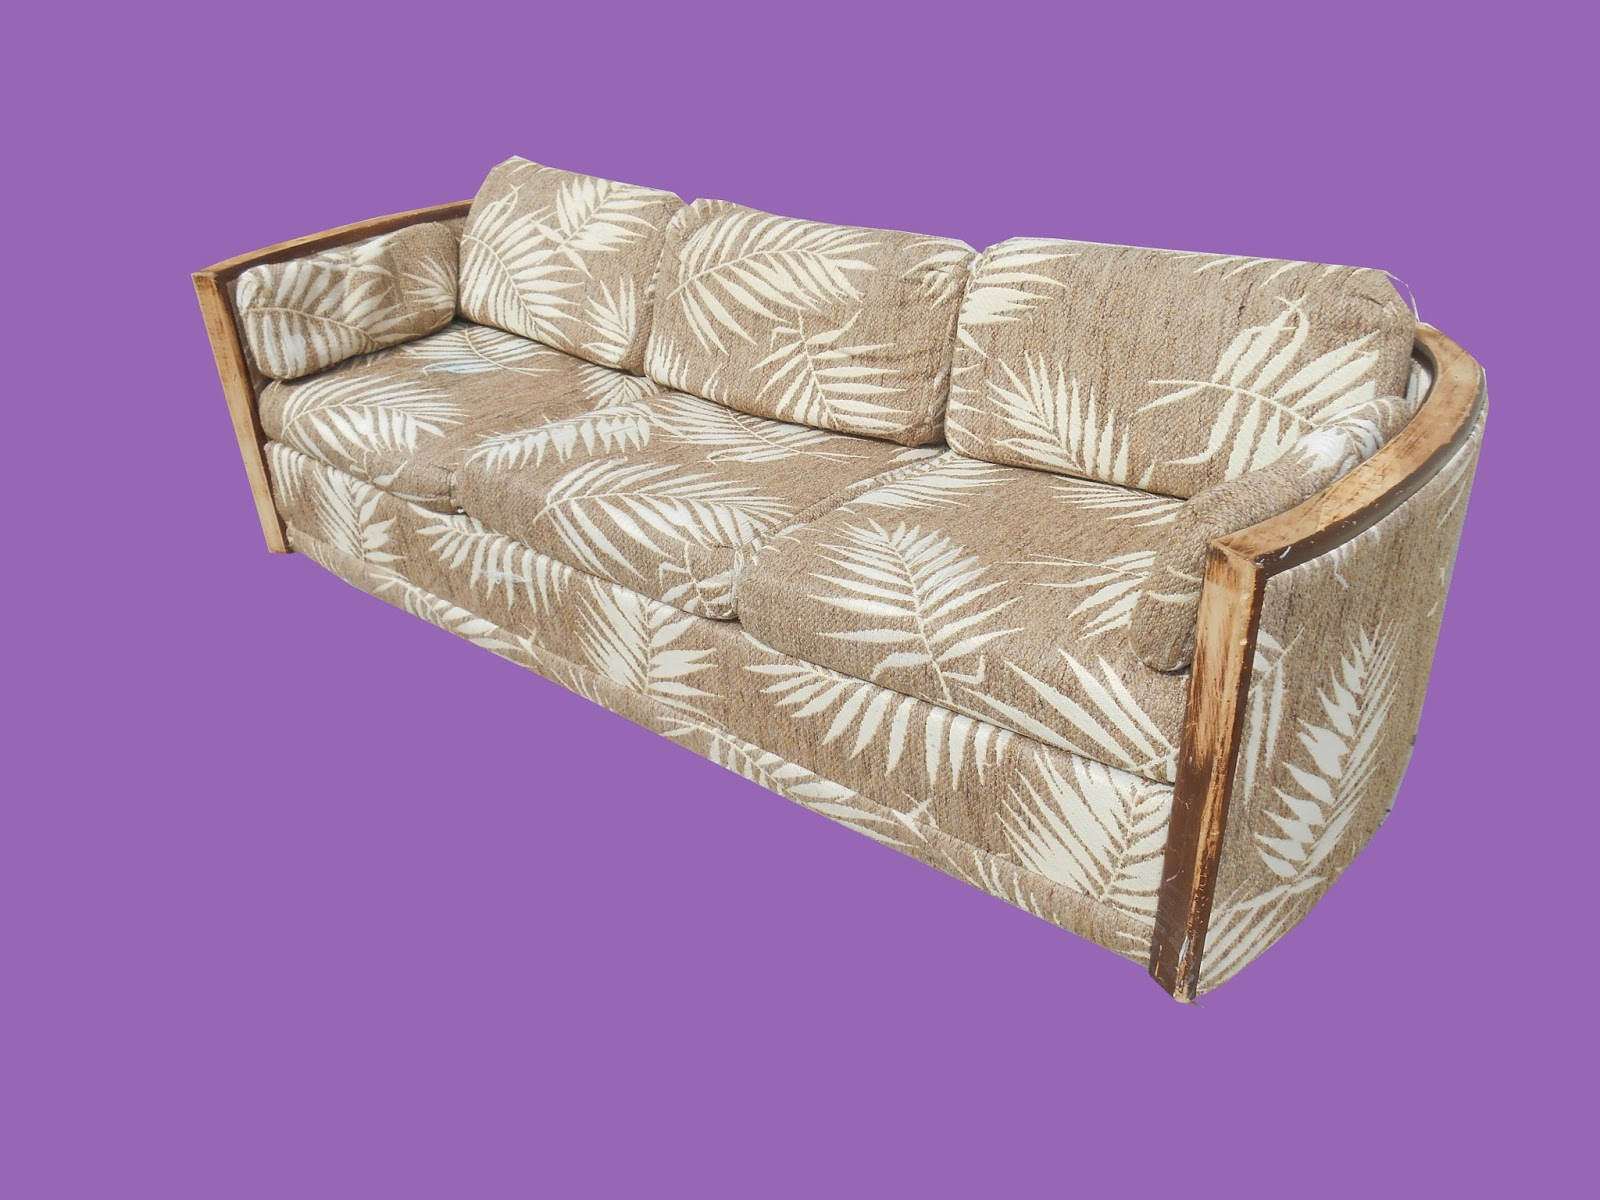 Cardboard Sofa New Leaf Selber Bauen Paletten Uhuru Furniture And Collectibles With Pattern Sold